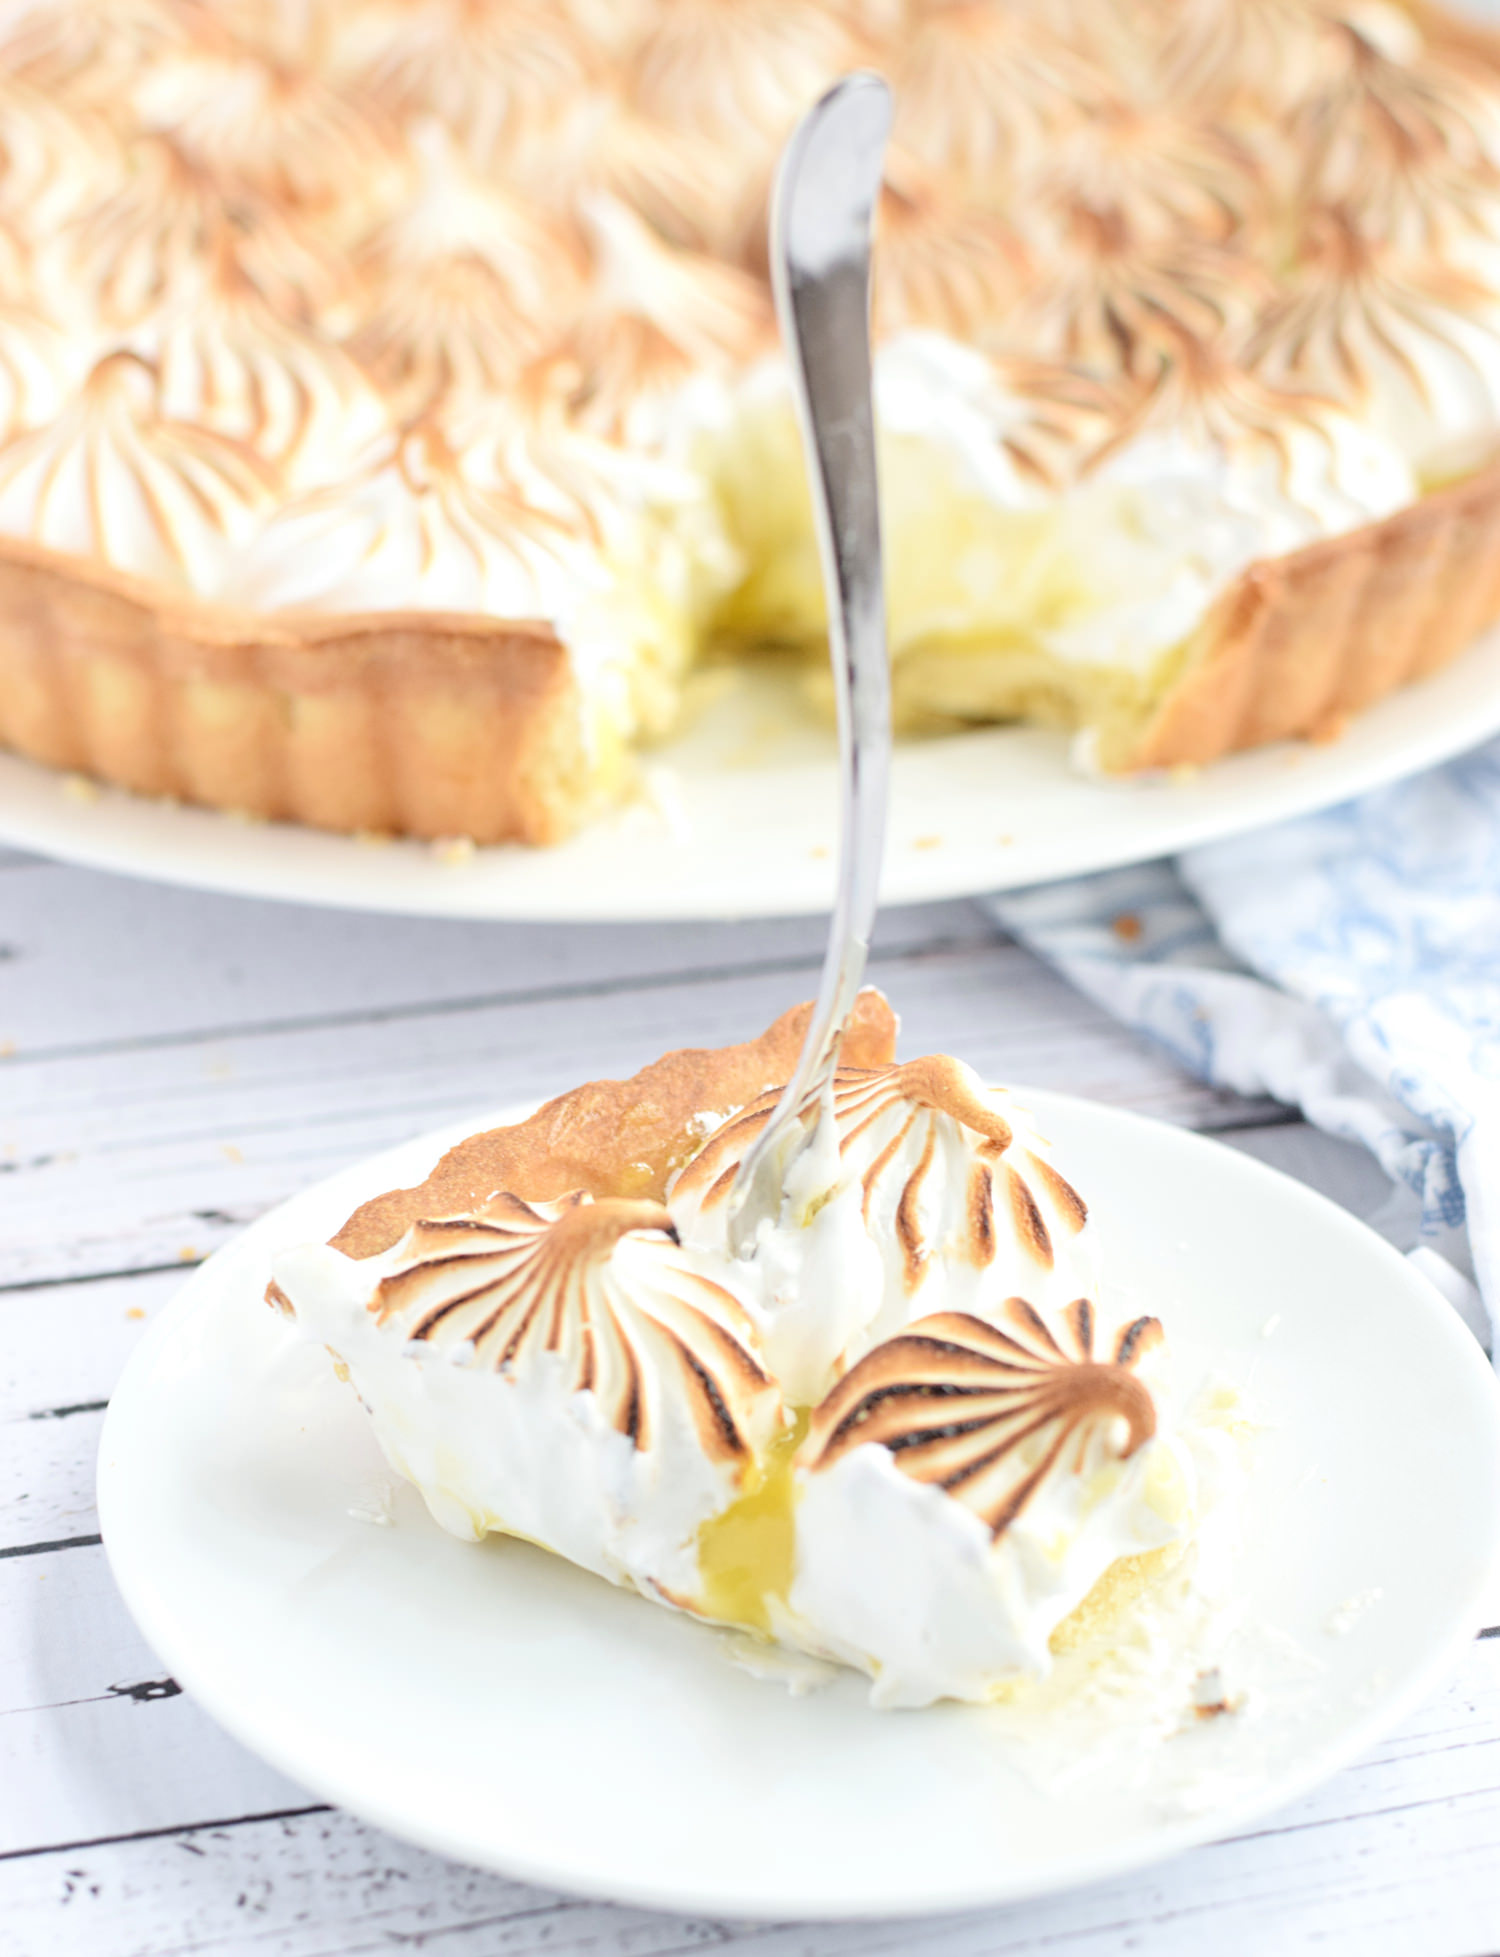 Lemon Meringue Pie | TrufflesandTrends.com